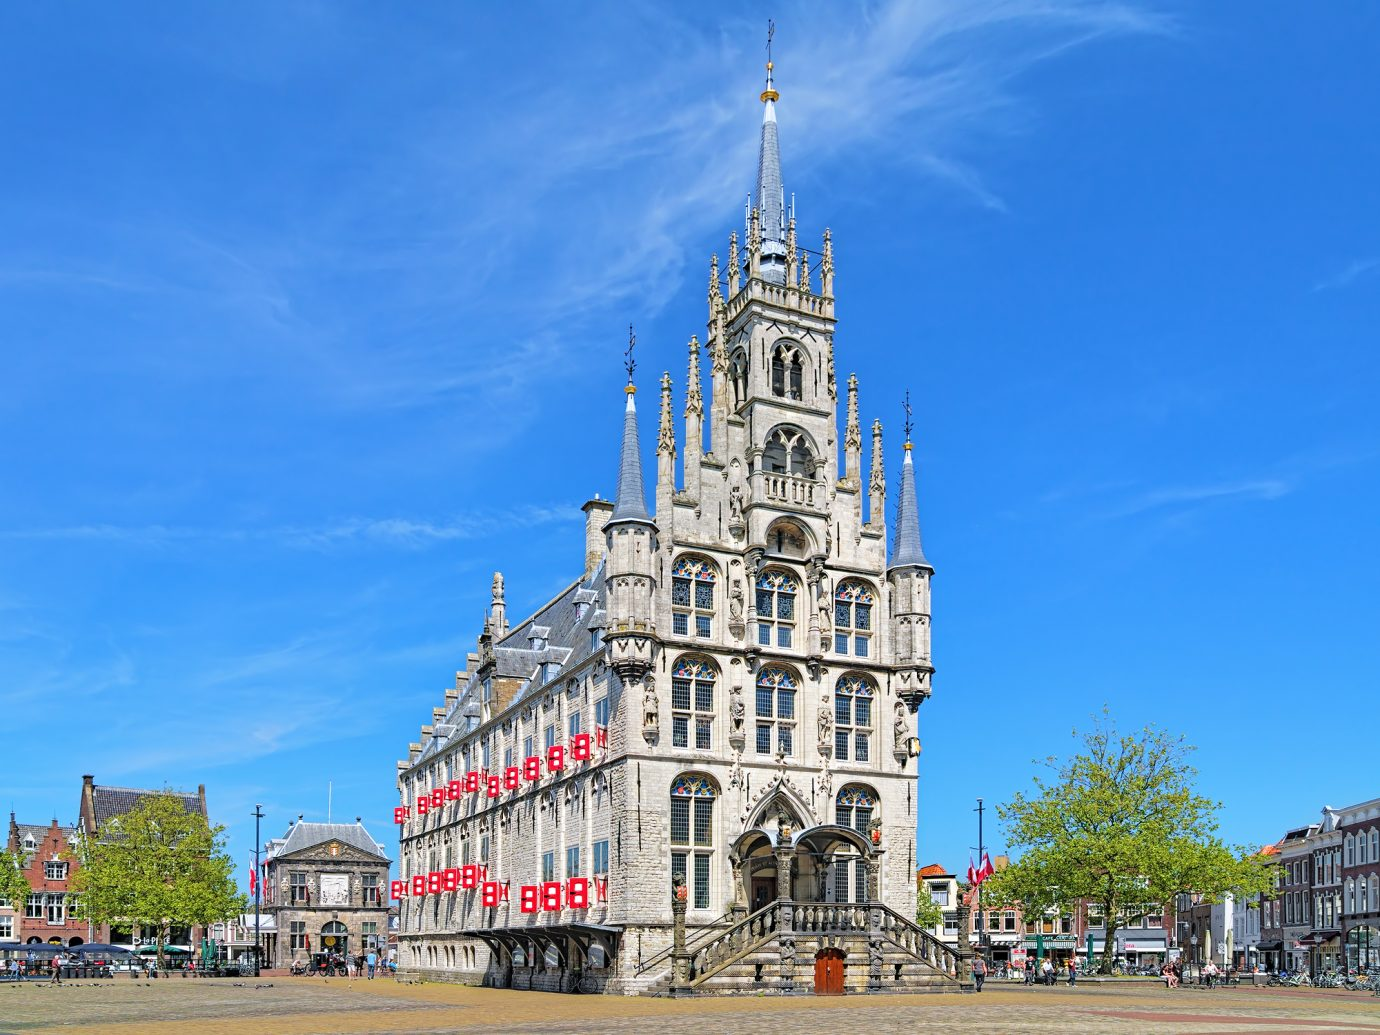 Town Hall of Gouda on the Markt square in Gouda, The Netherlands